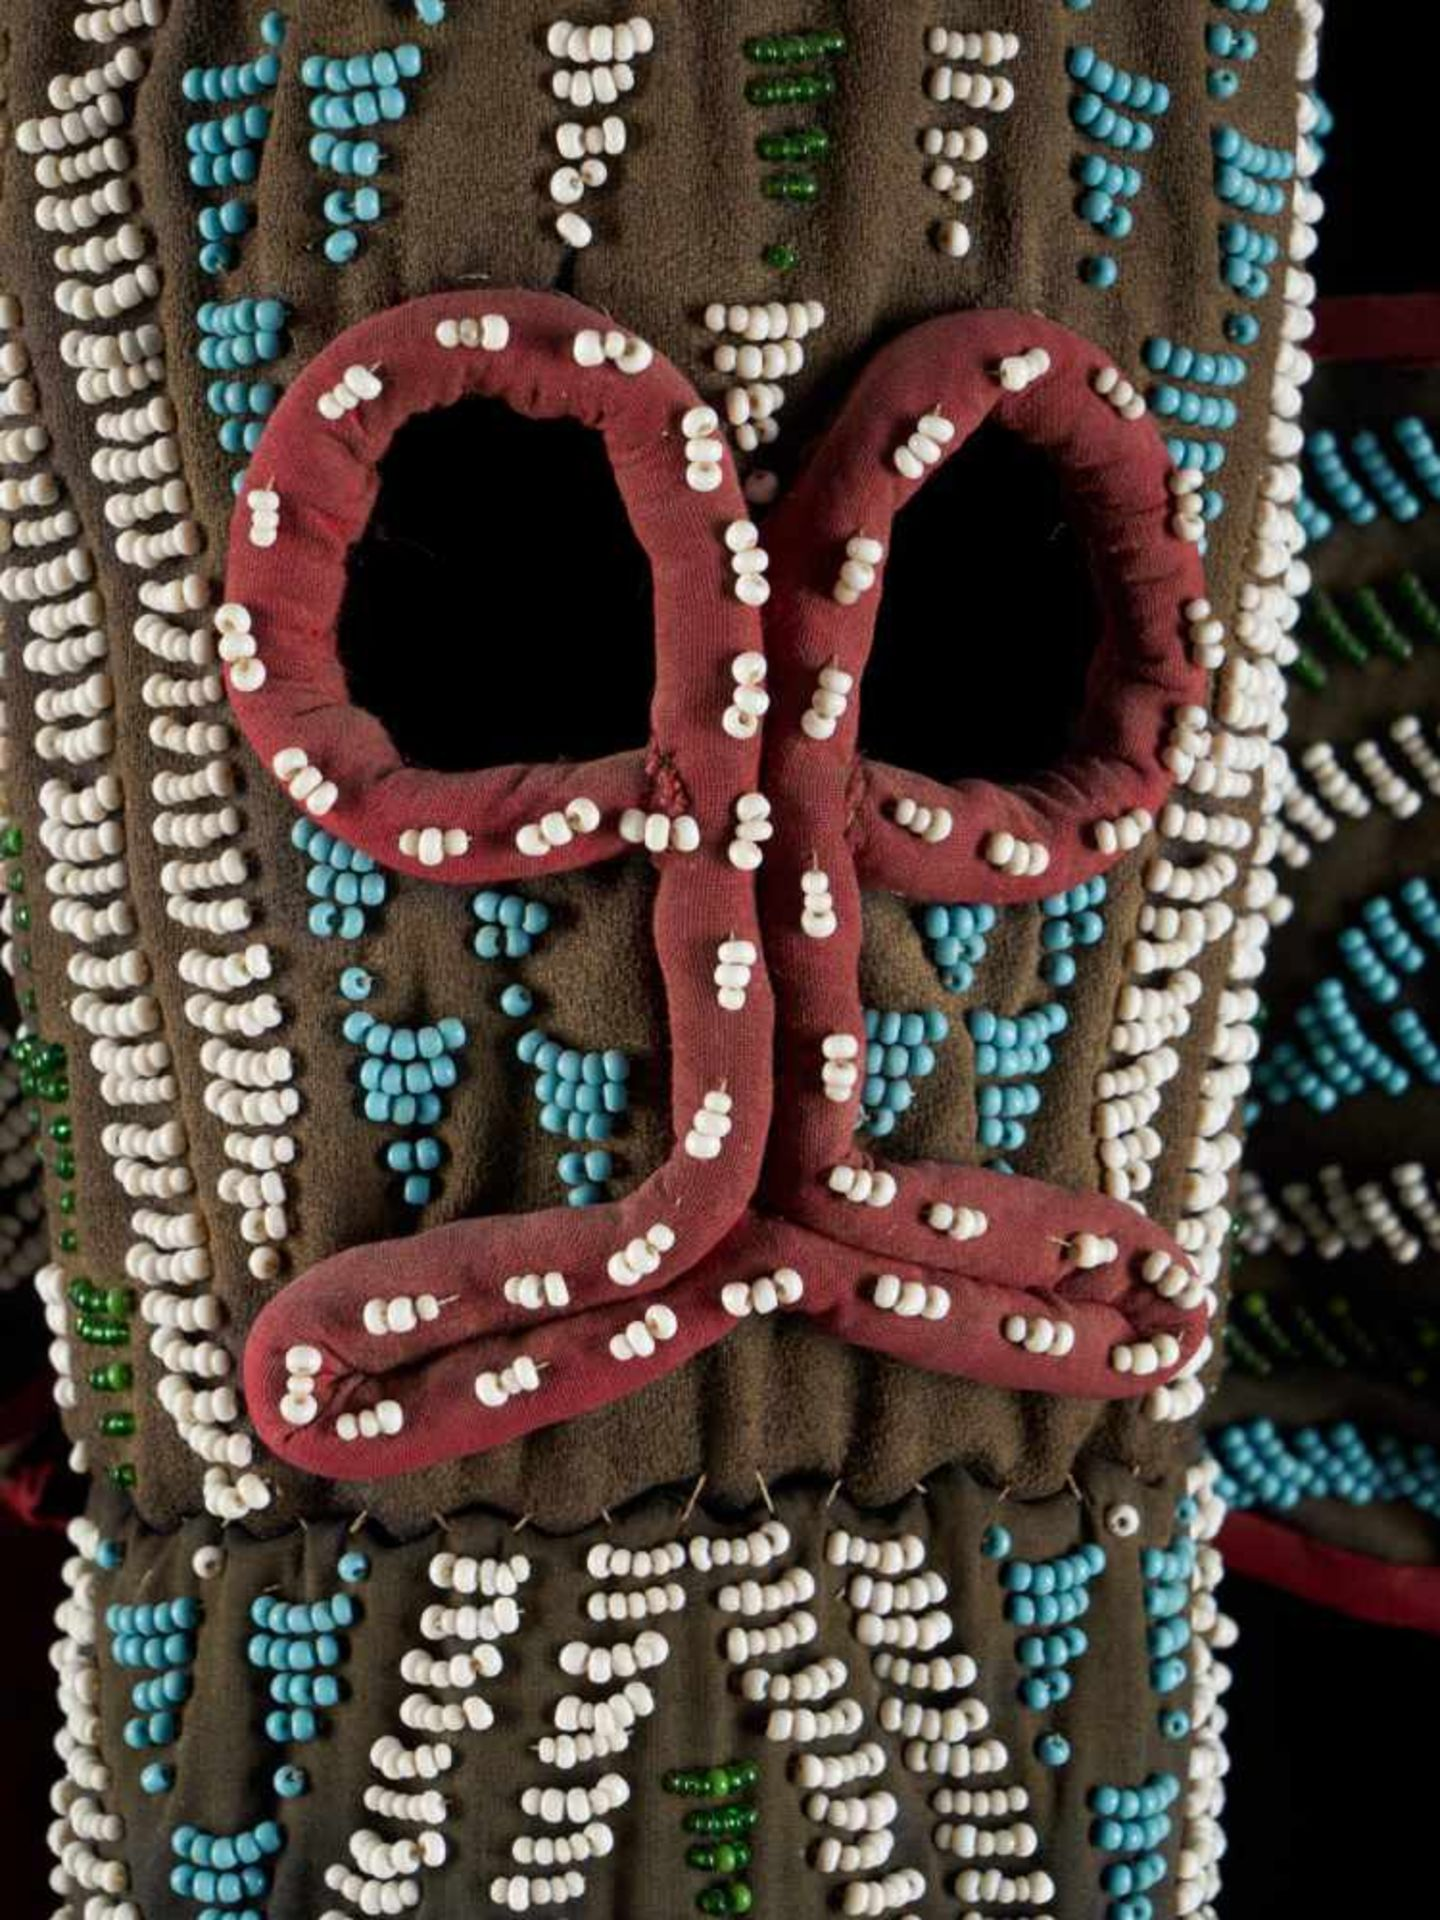 Beaded Kuosi Elephant Mask Topped With Leopard Figure - Tribal ArtThis elephant mask is - Bild 14 aus 15